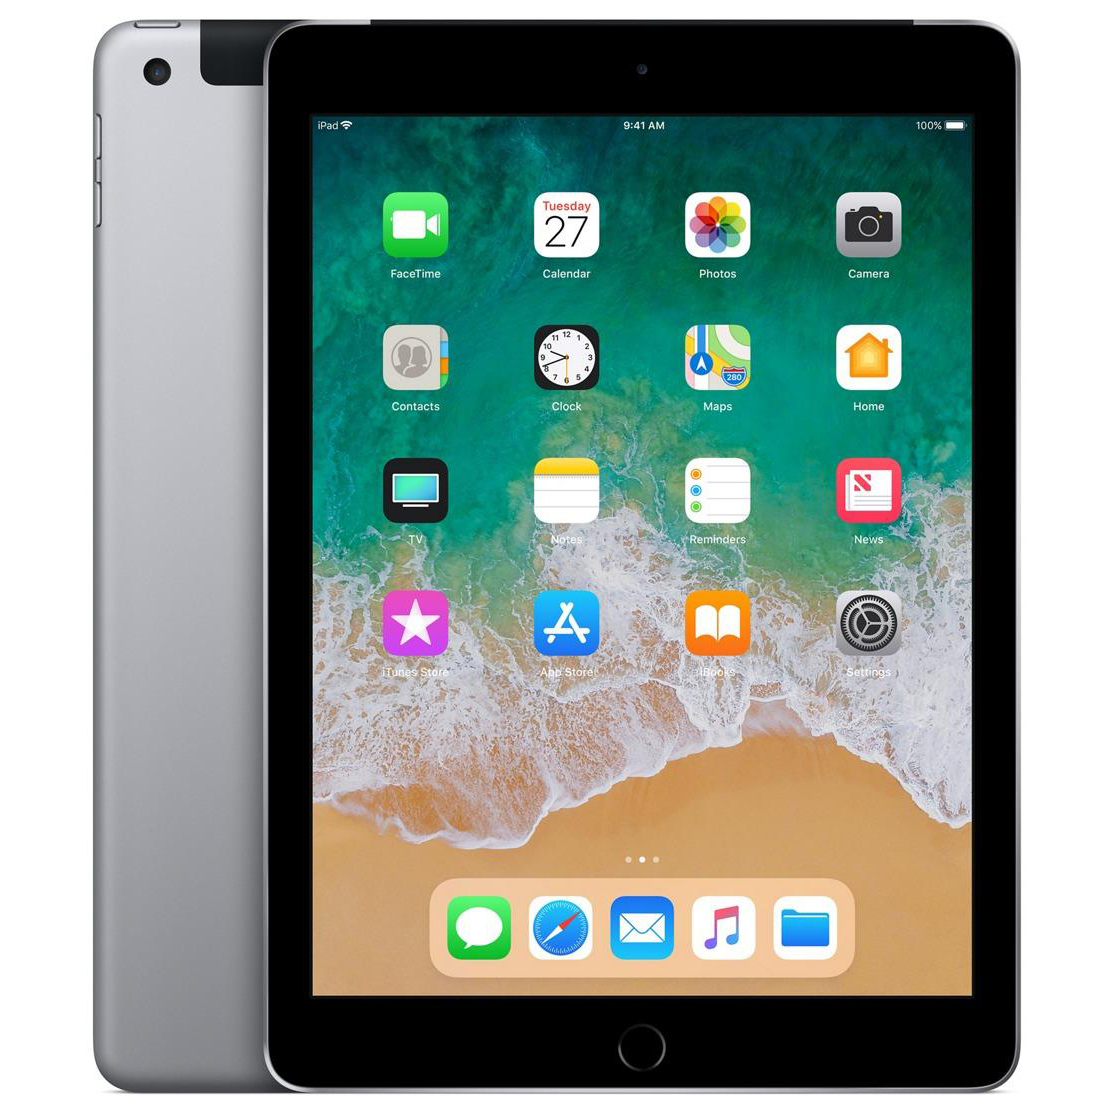 Apple iPad Cellular Wi-Fi 32GB 8Mp Camera 9.7inch Touch ID Finger Sensor Space Grey Ref MP242B/A